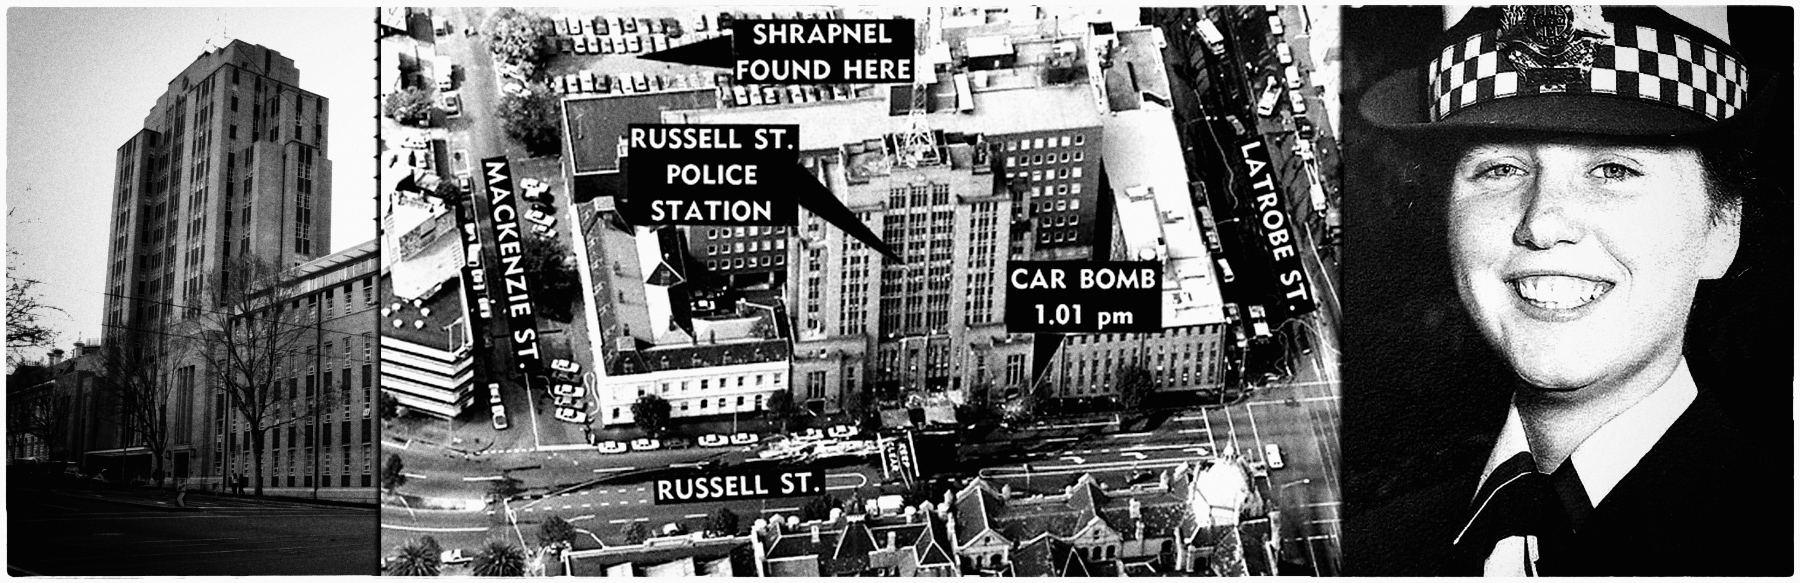 russell street bombing - photo #16